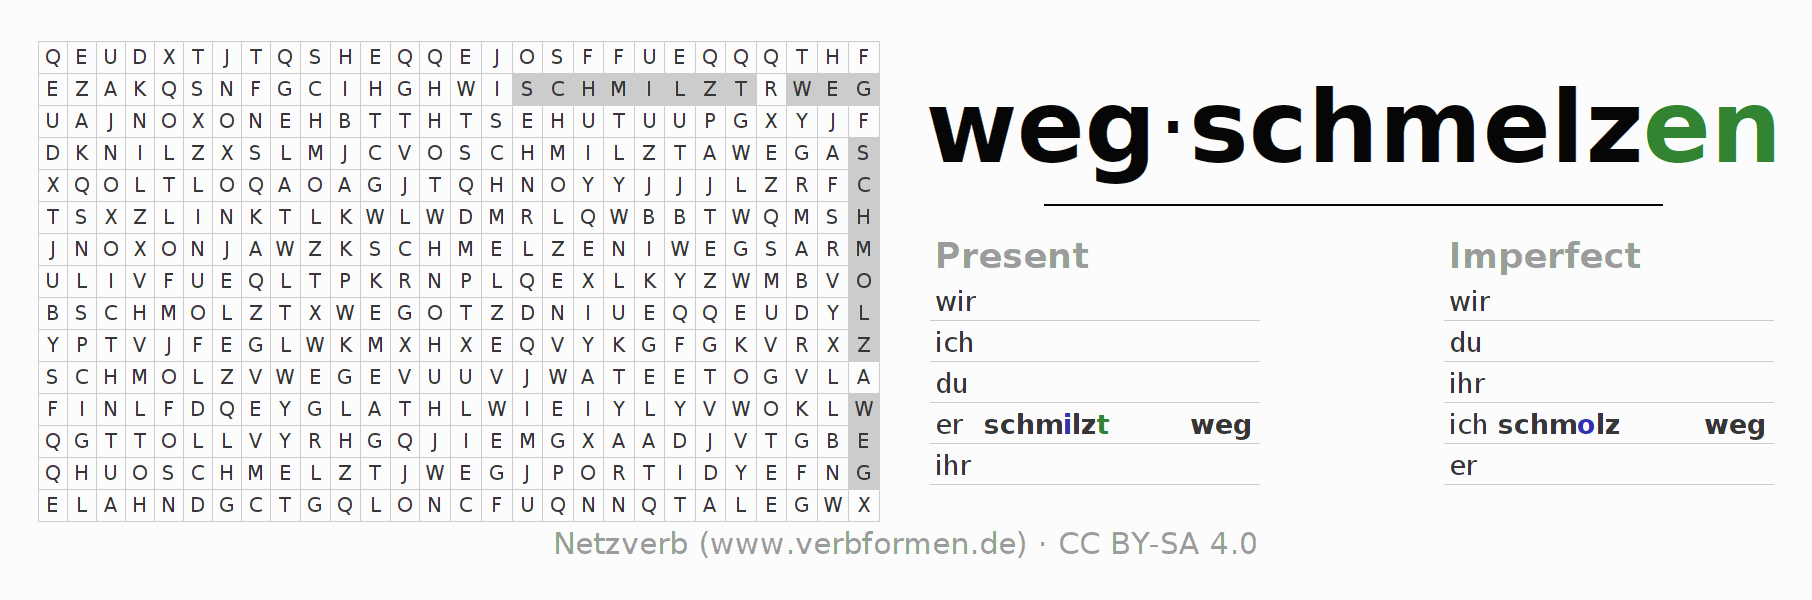 Word search puzzle for the conjugation of the verb wegschmelzen (ist)